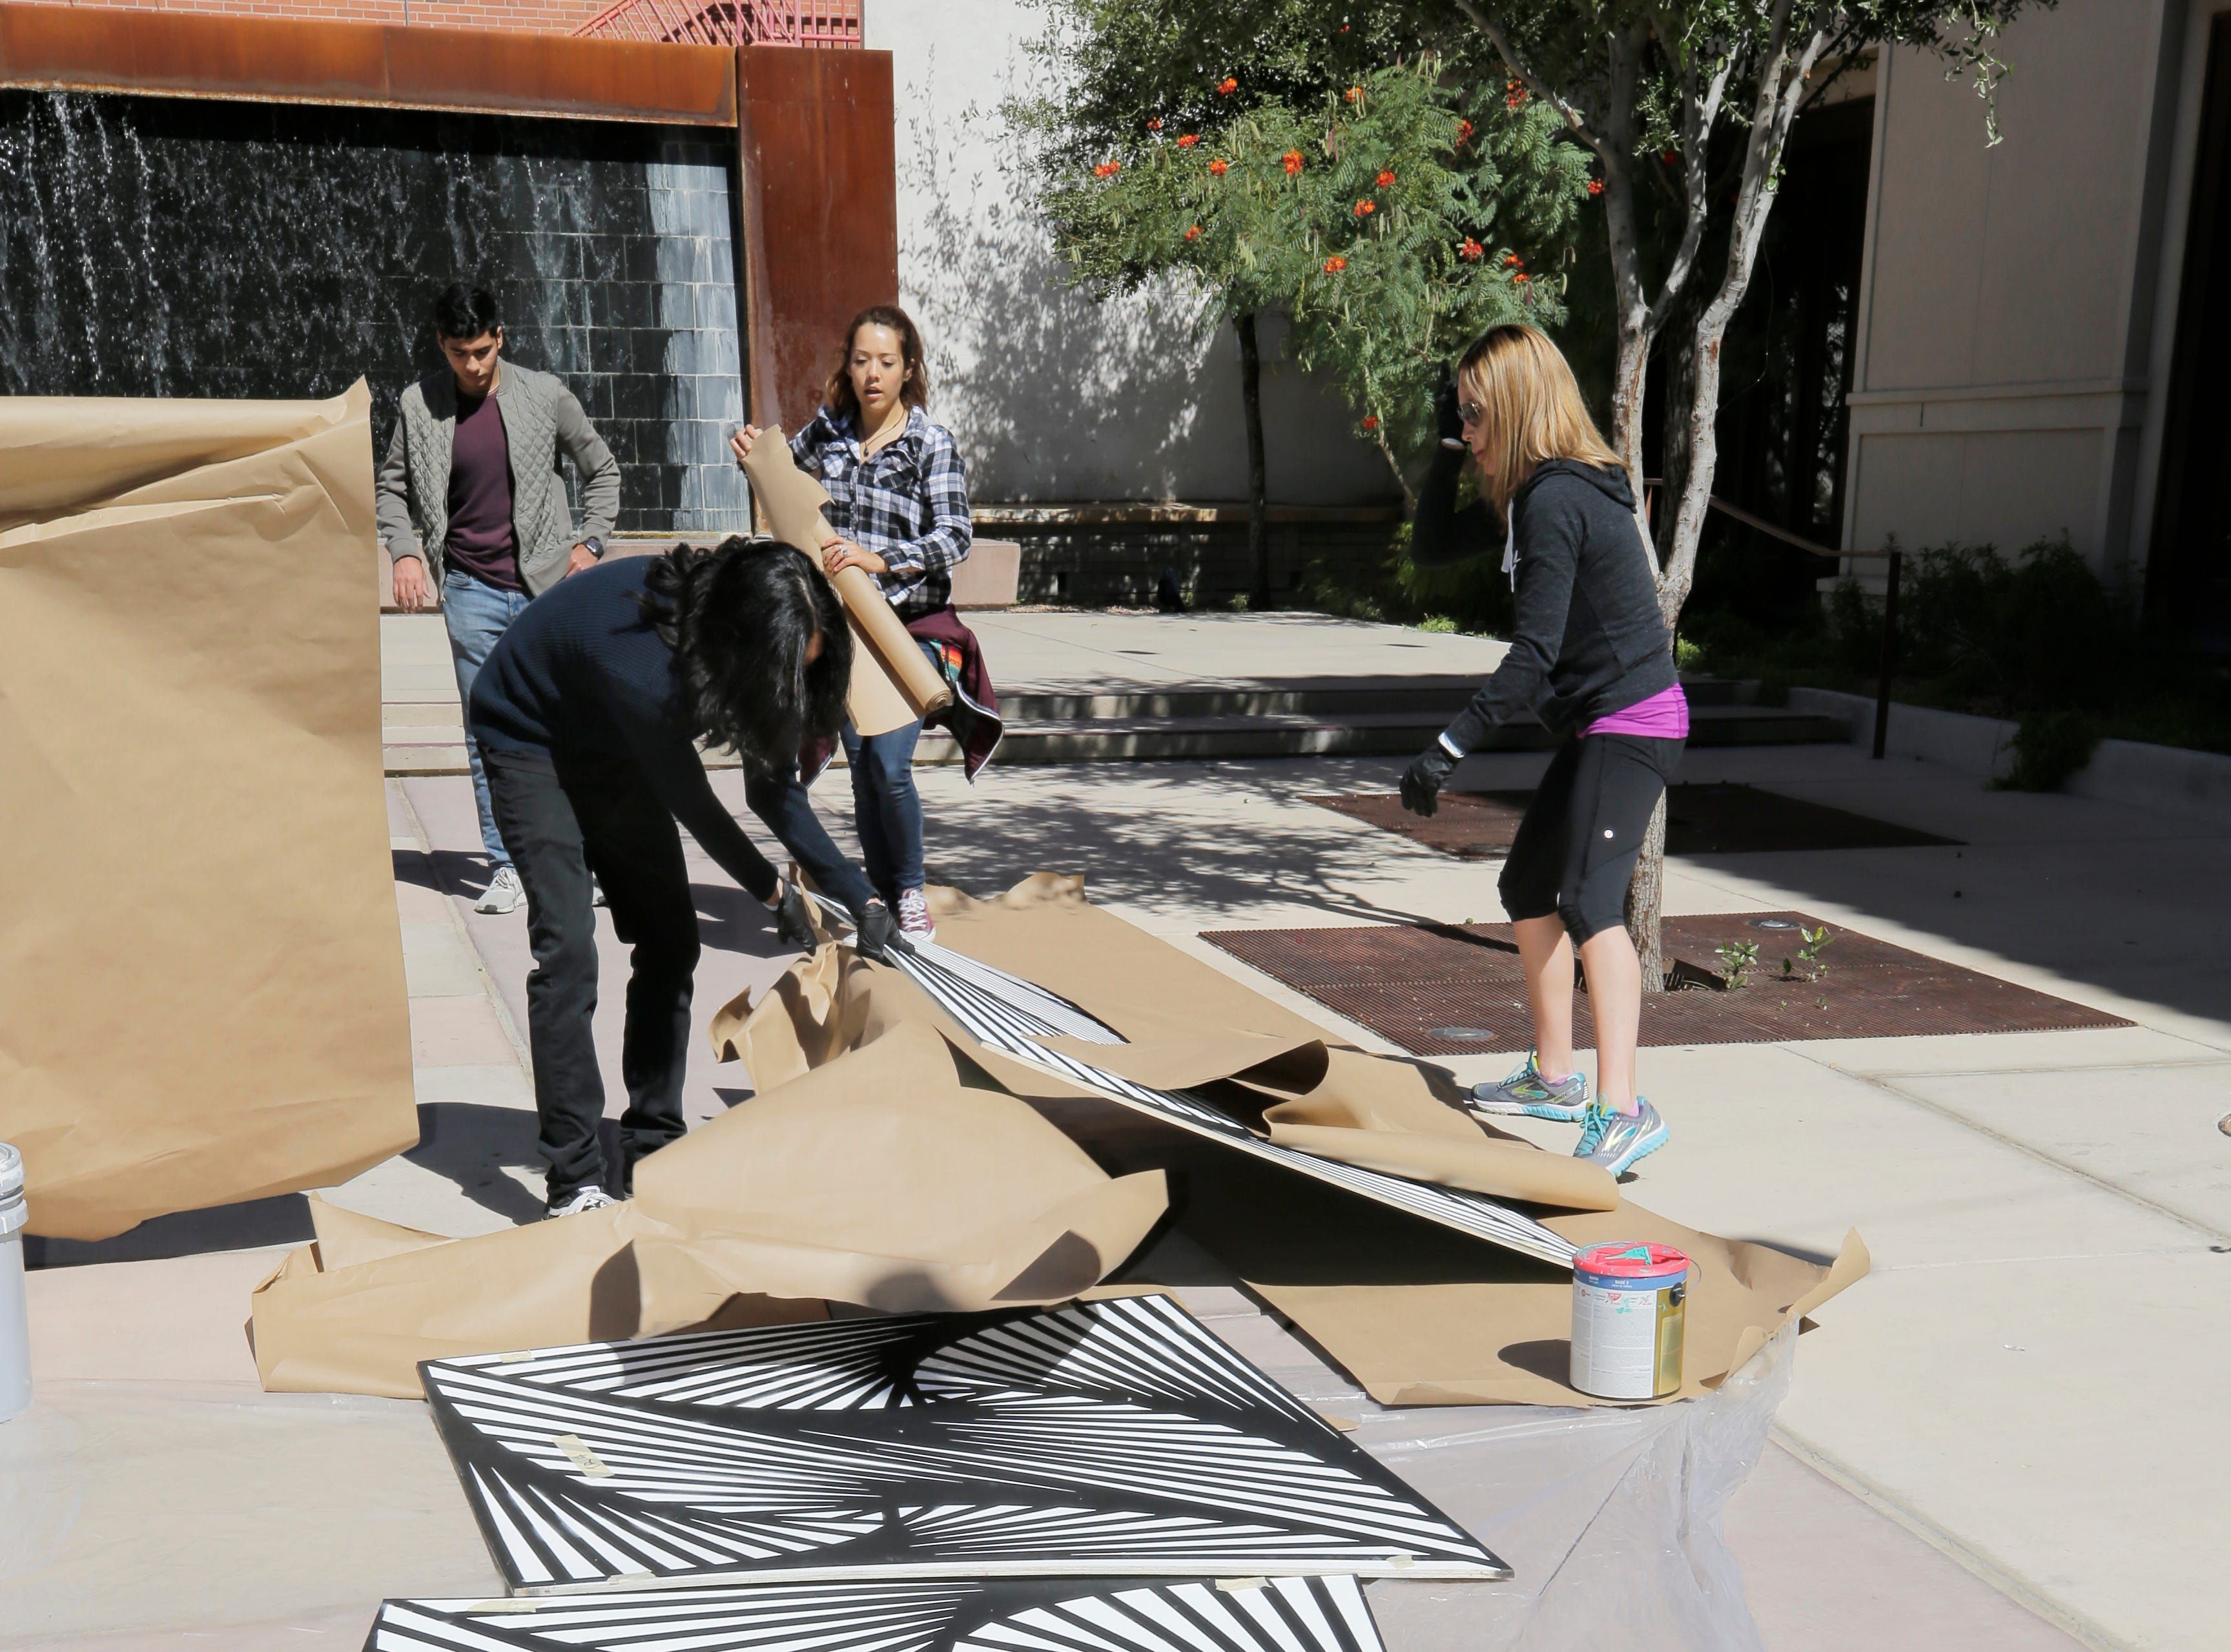 Local artist Laura Turon began installation Wednesday on her Mixed Media/Art Installation, Paradox Pyramid which is being constructed at Arts Festival Plaza for this weekends Chalk the Block event. Turon is being helped by several volunteers, including her husband Adam Gonzalez, Staphany Garnica and others.